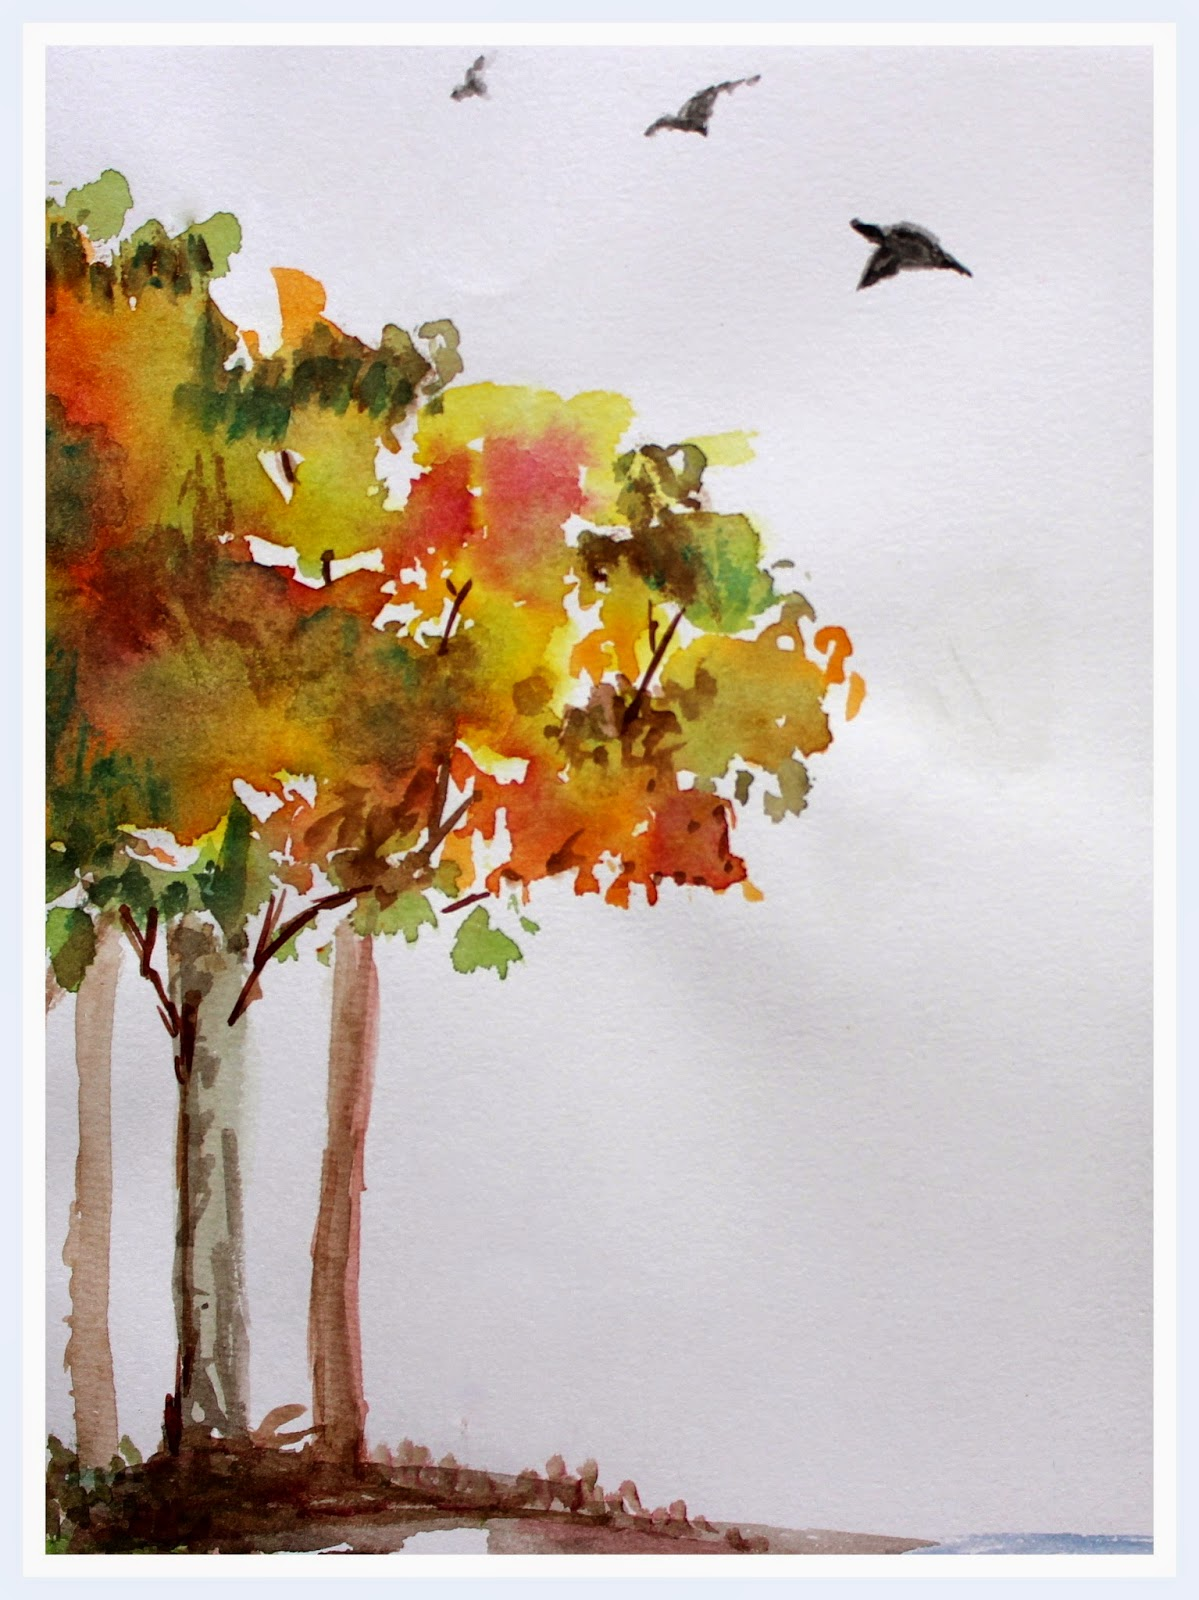 autumn trees birds landscape colorful hues season watercolor painting